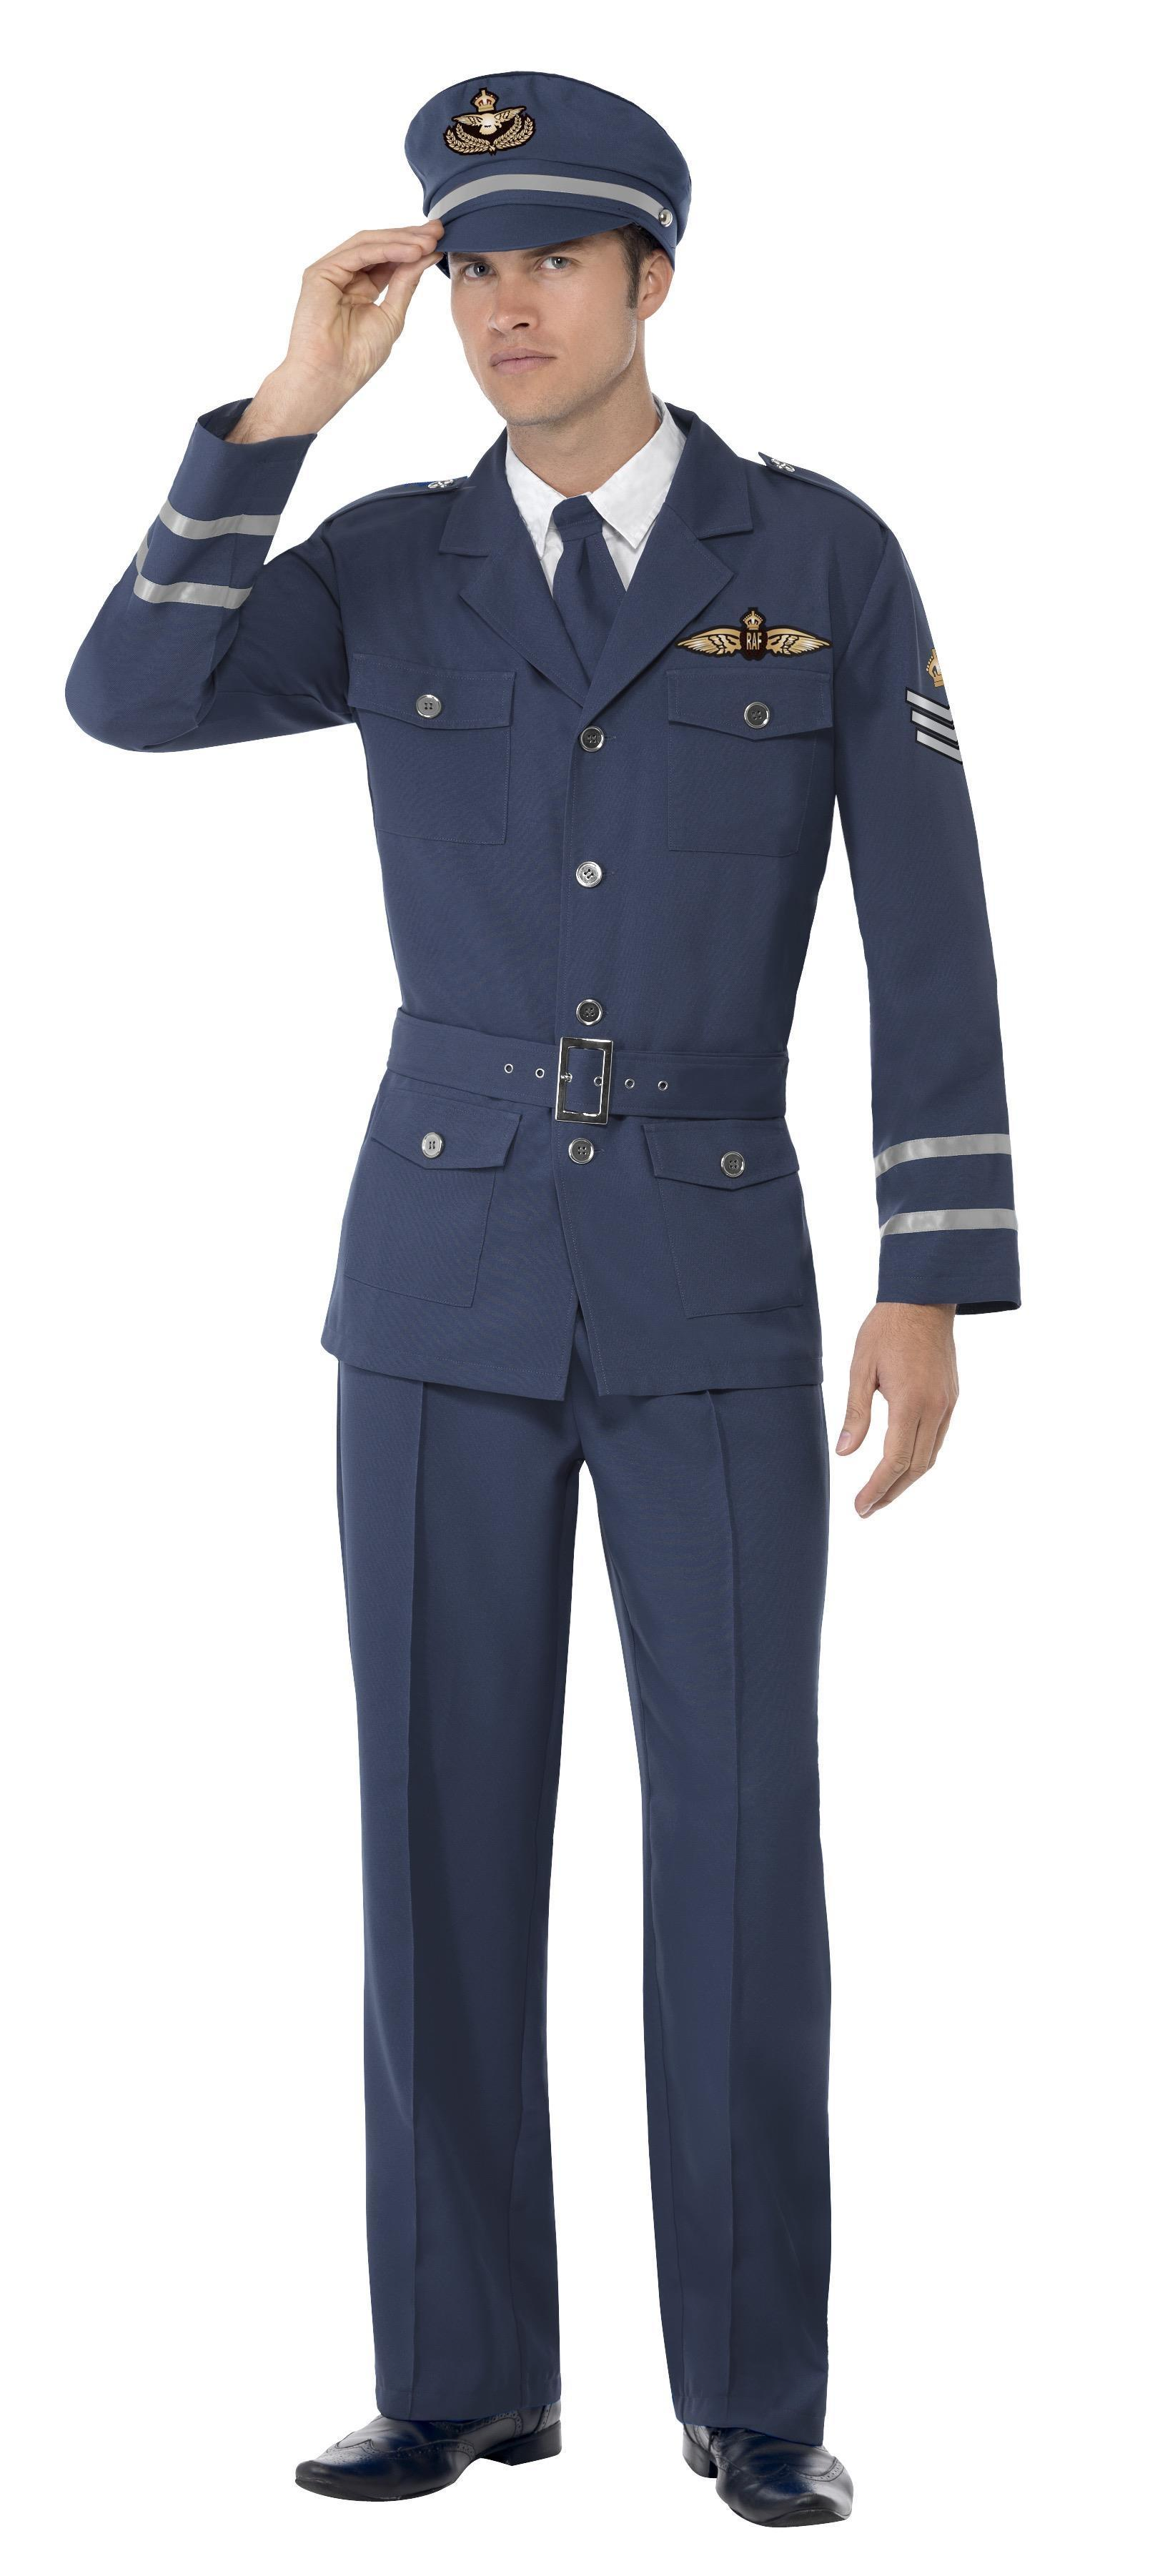 WW2 Air Force Captain Costume Blue